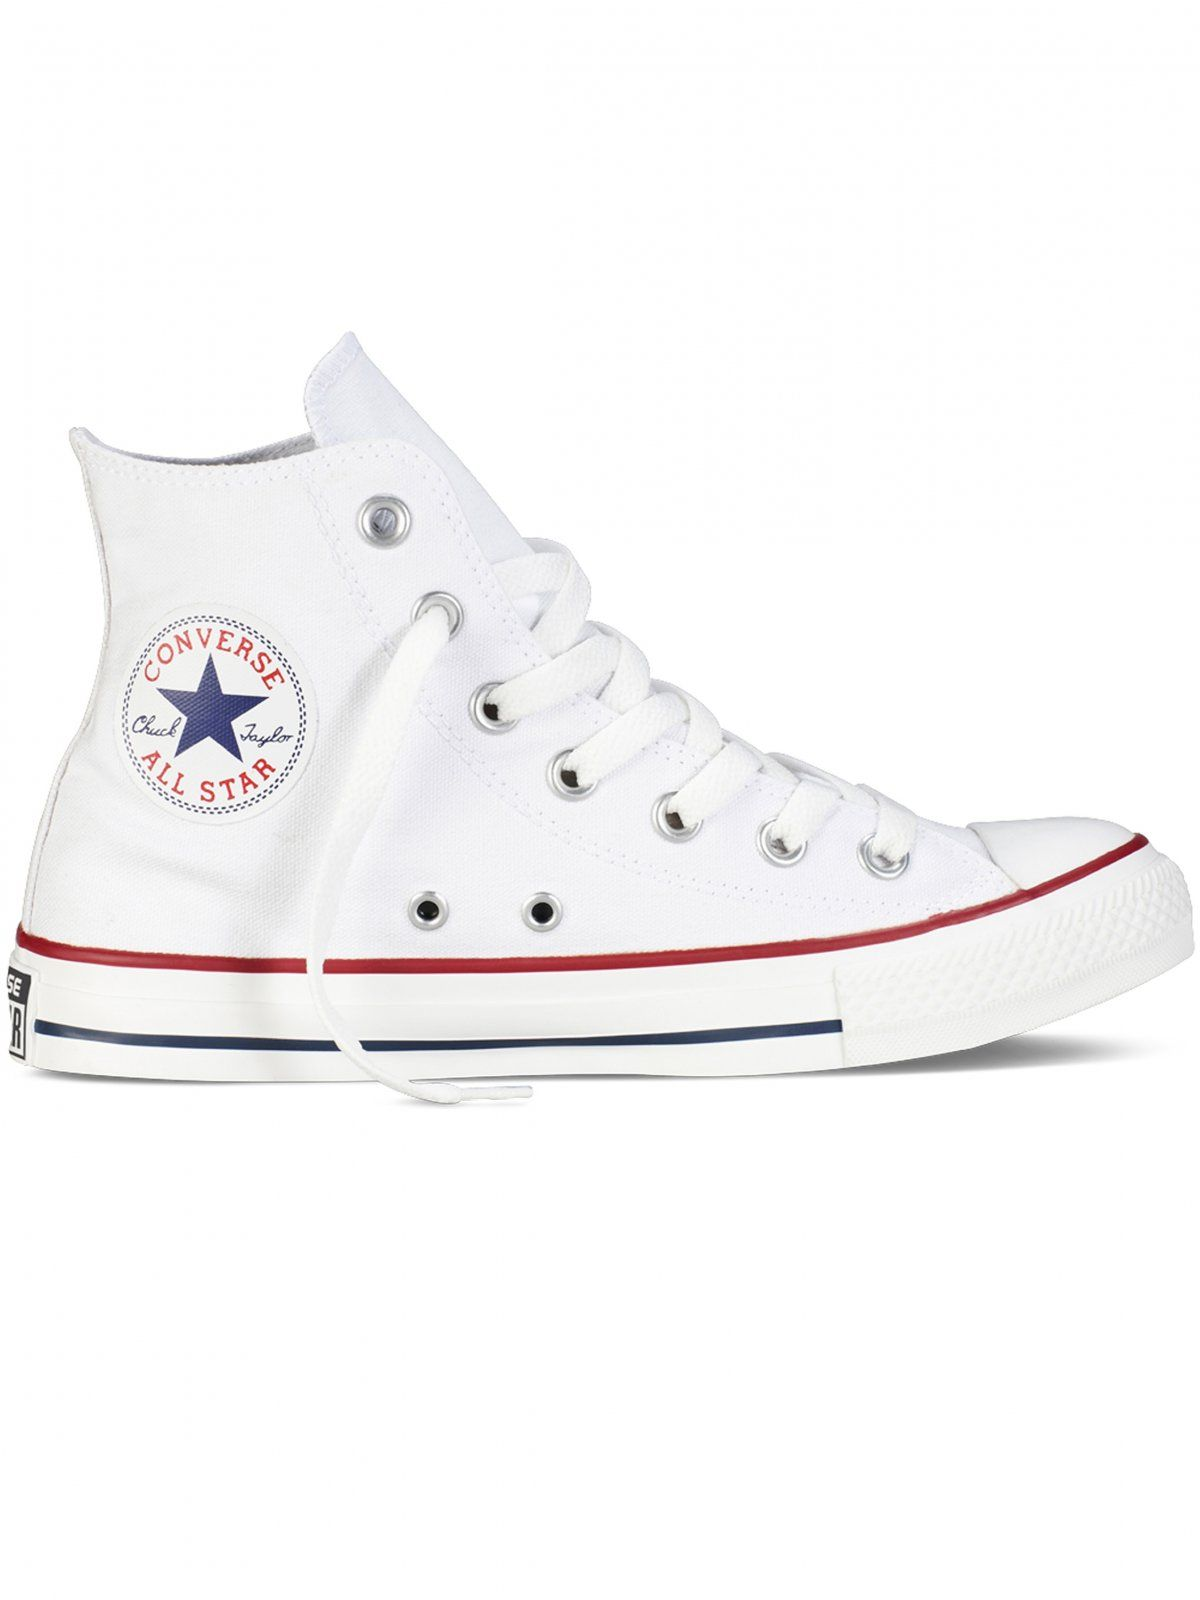 Converse All Star Unisex Chuck Taylor High Tops - White